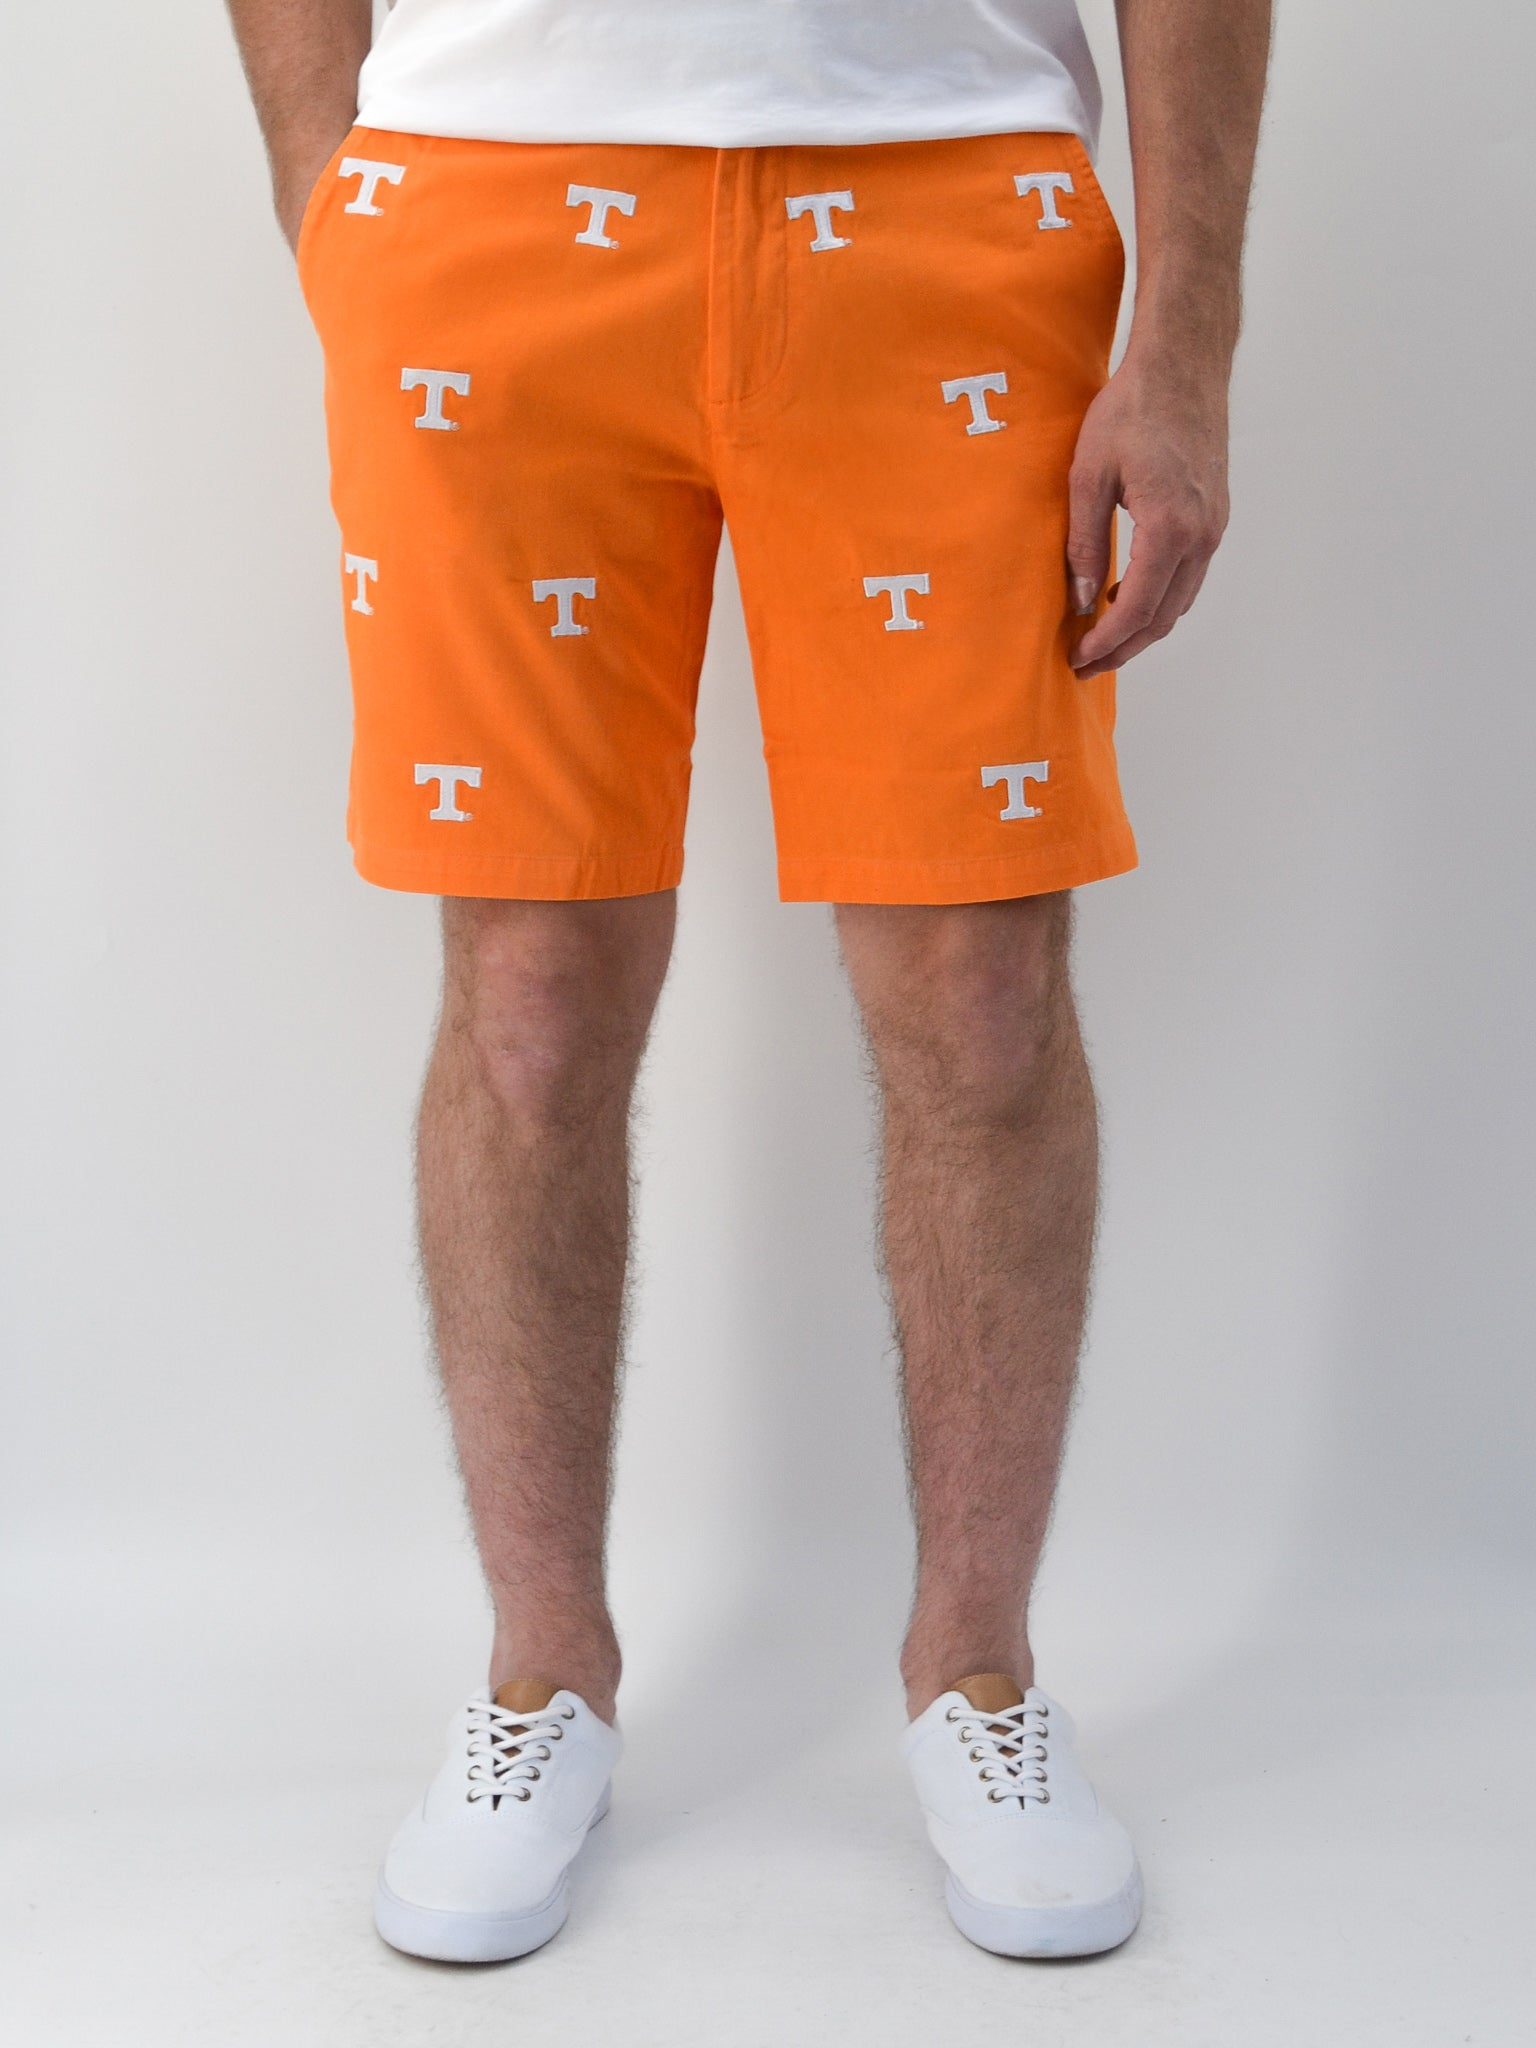 Tennessee Orange Shorts